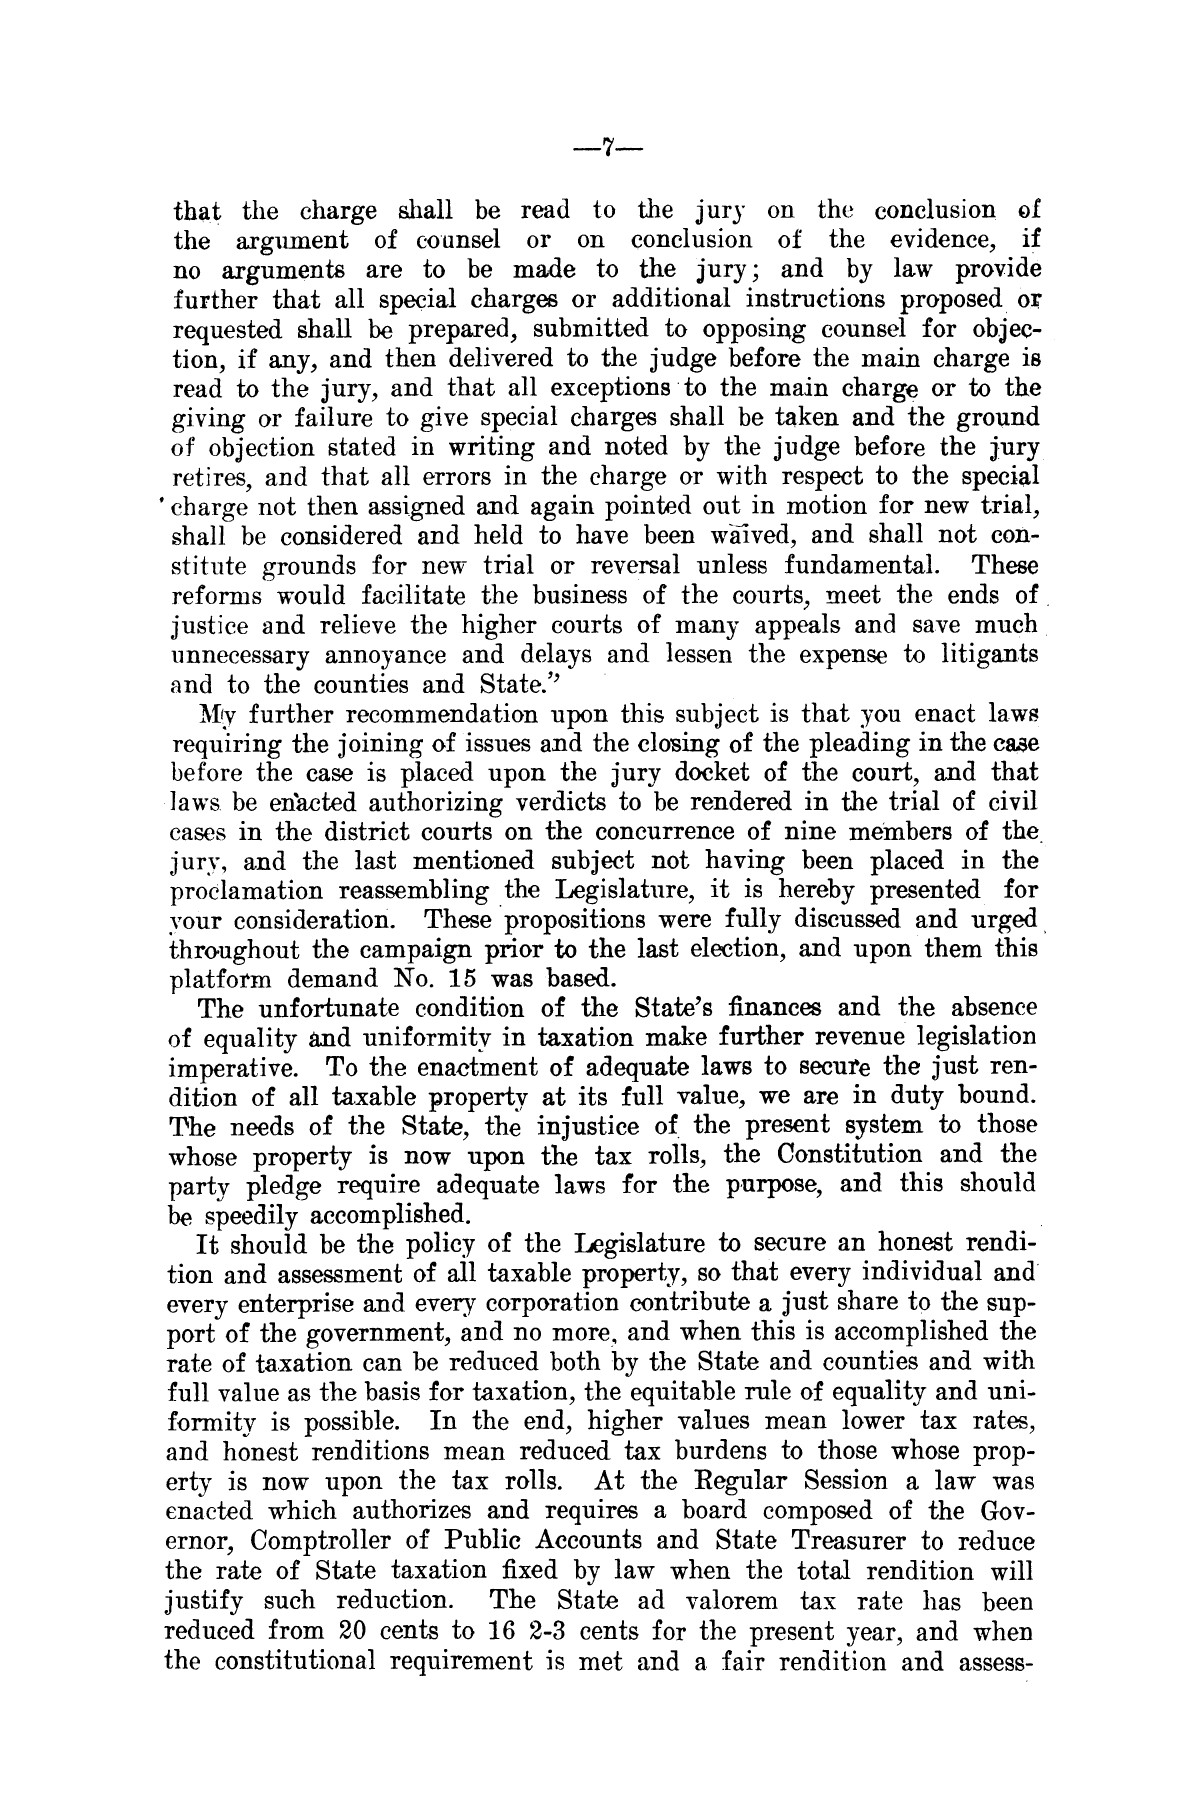 Message of Governor T.M. Campbell to the first called session of the thirtieth legislature of Texas: together with the proclamation of the Governor convening the legislature in extra-ordinary session.                                                                                                      [Sequence #]: 6 of 8